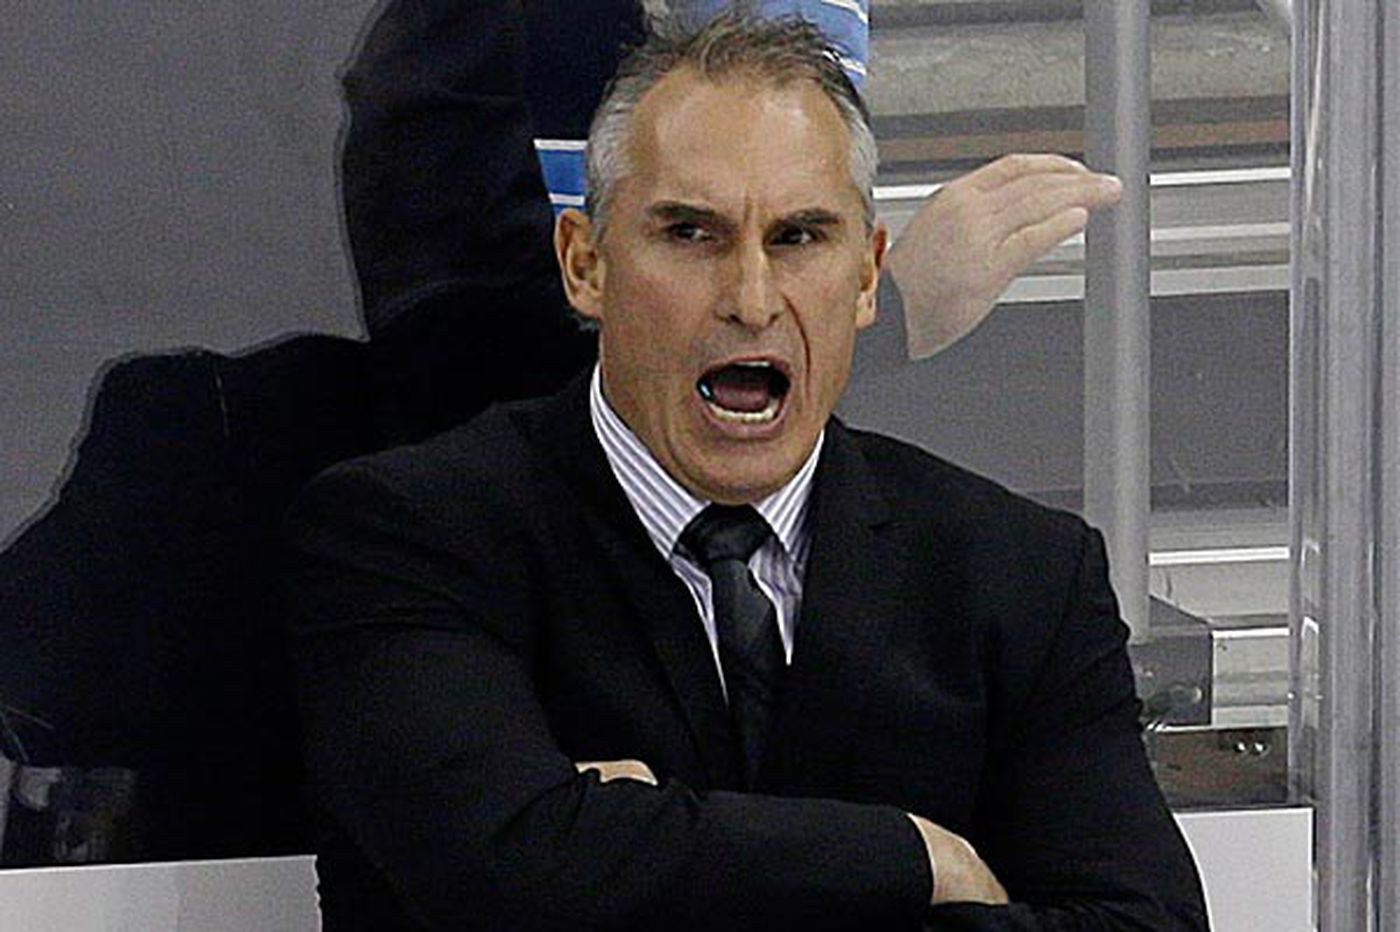 Berube has a beef with the officiating